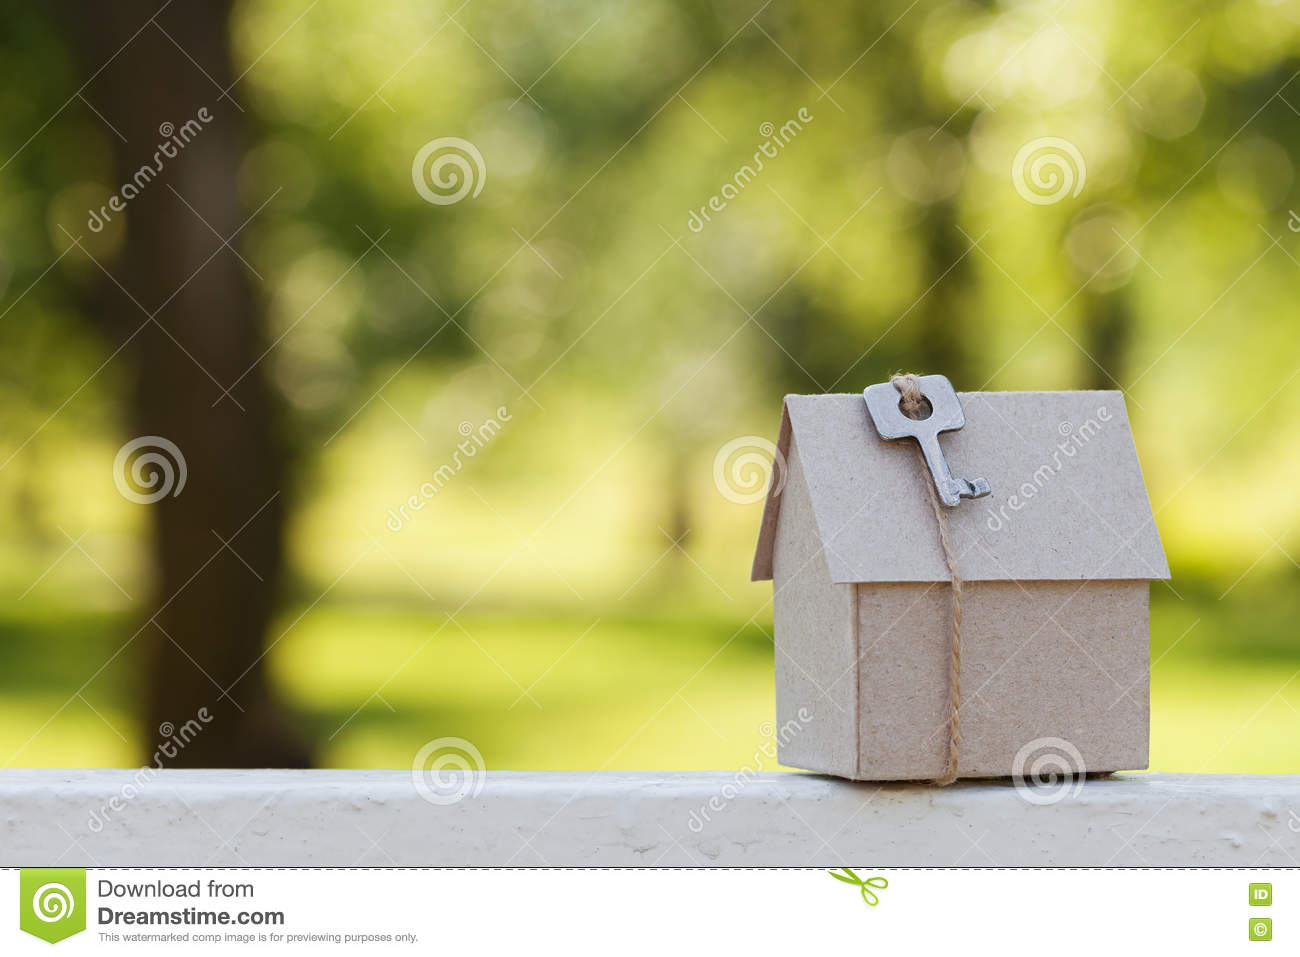 Cardboard house with key against green bokeh. Building, loan, housewarming, insurance, real estate or buying new home.